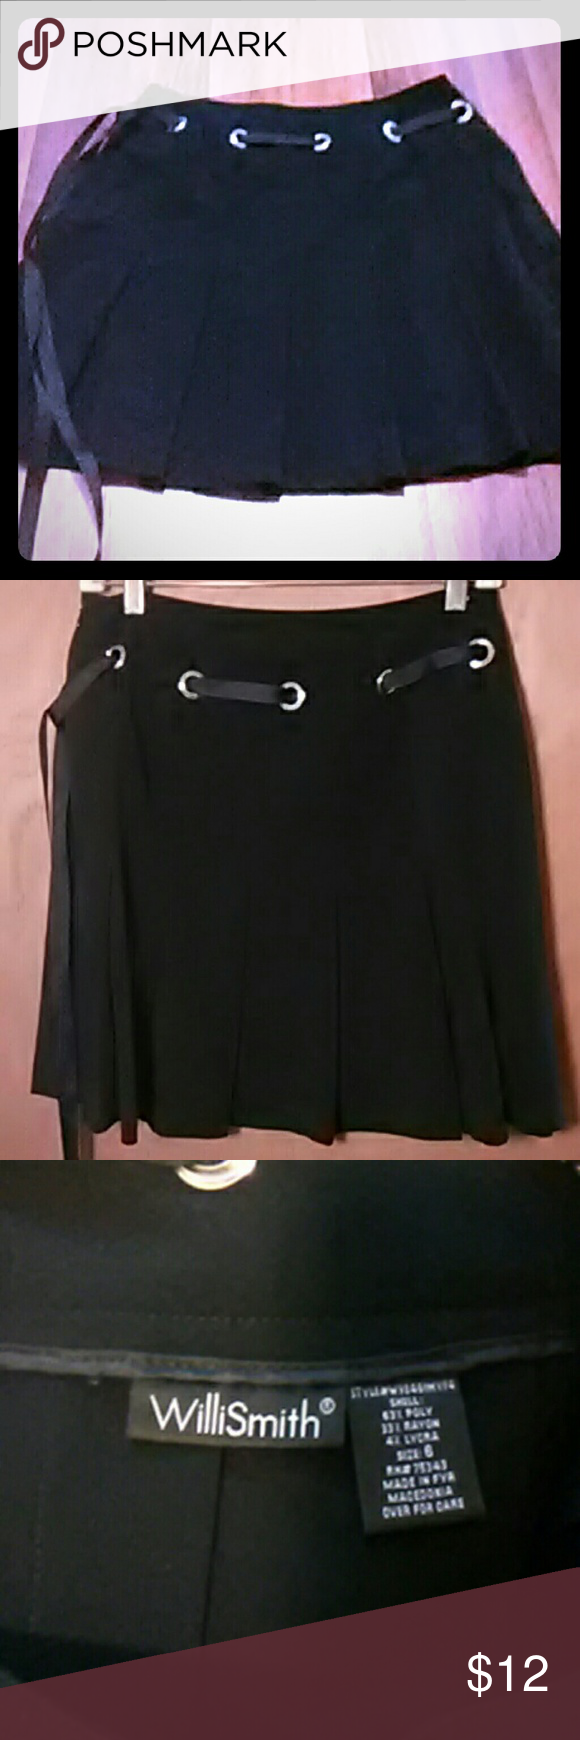 "Pleated black skirt/Willi Smith Cute pleated skirt with ribbon woven through. You can tie it however you like. The loops are silver. I am 5'7"" and skirt falls right above my knee. Great with boots. Worn a handful of times. Looks like new. Willi Smith Skirts Midi"